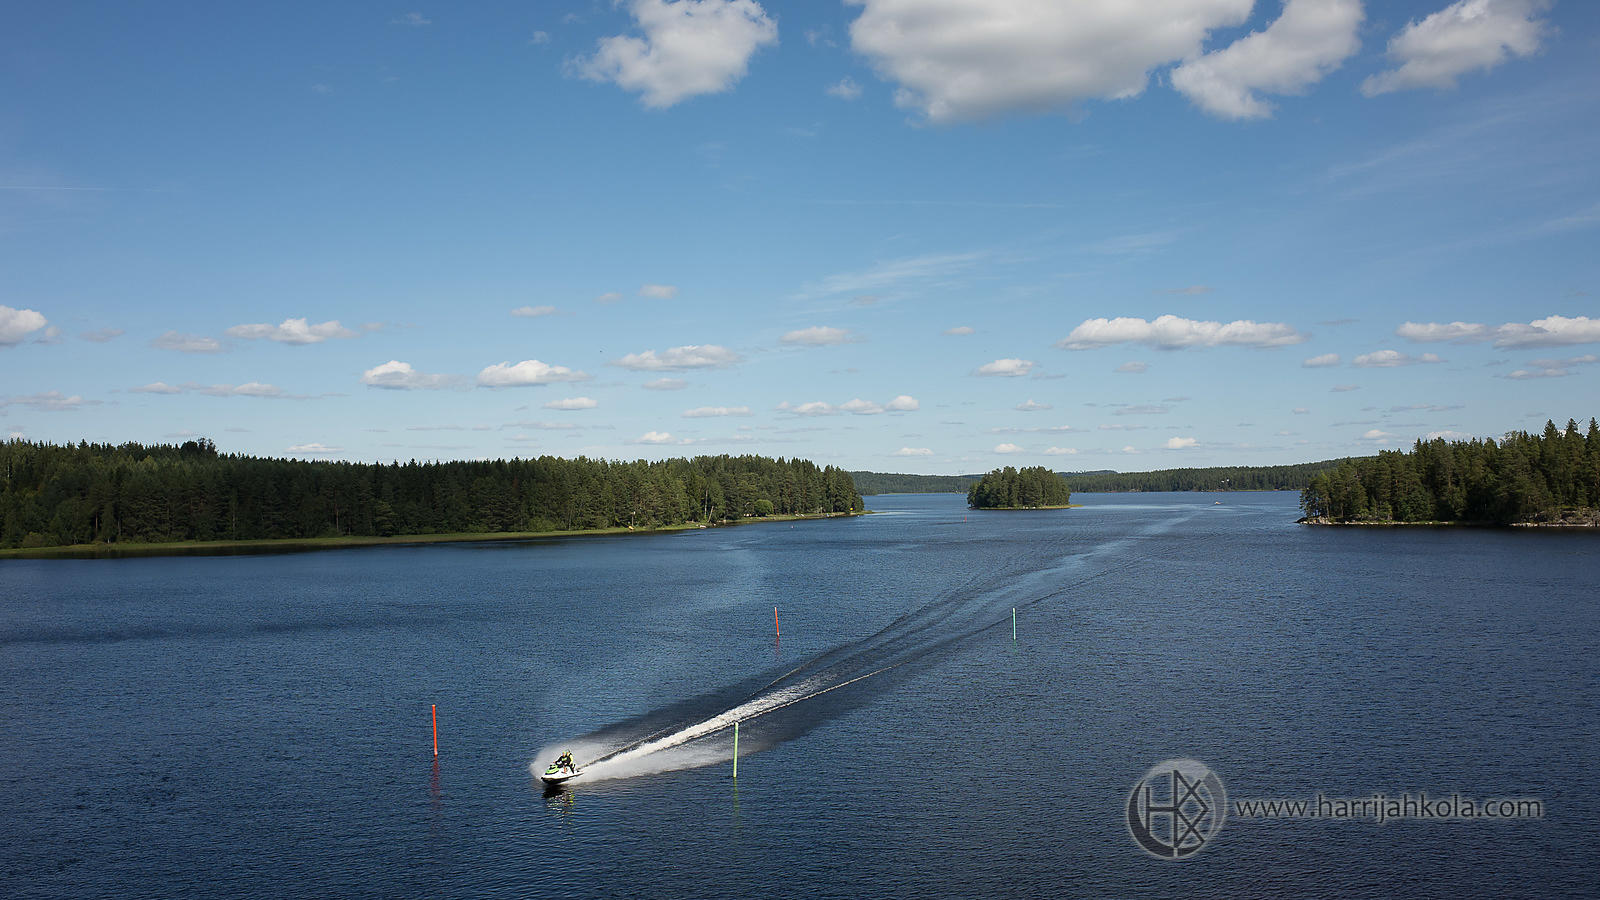 Finland - Jämsä (Fast on the Lake)